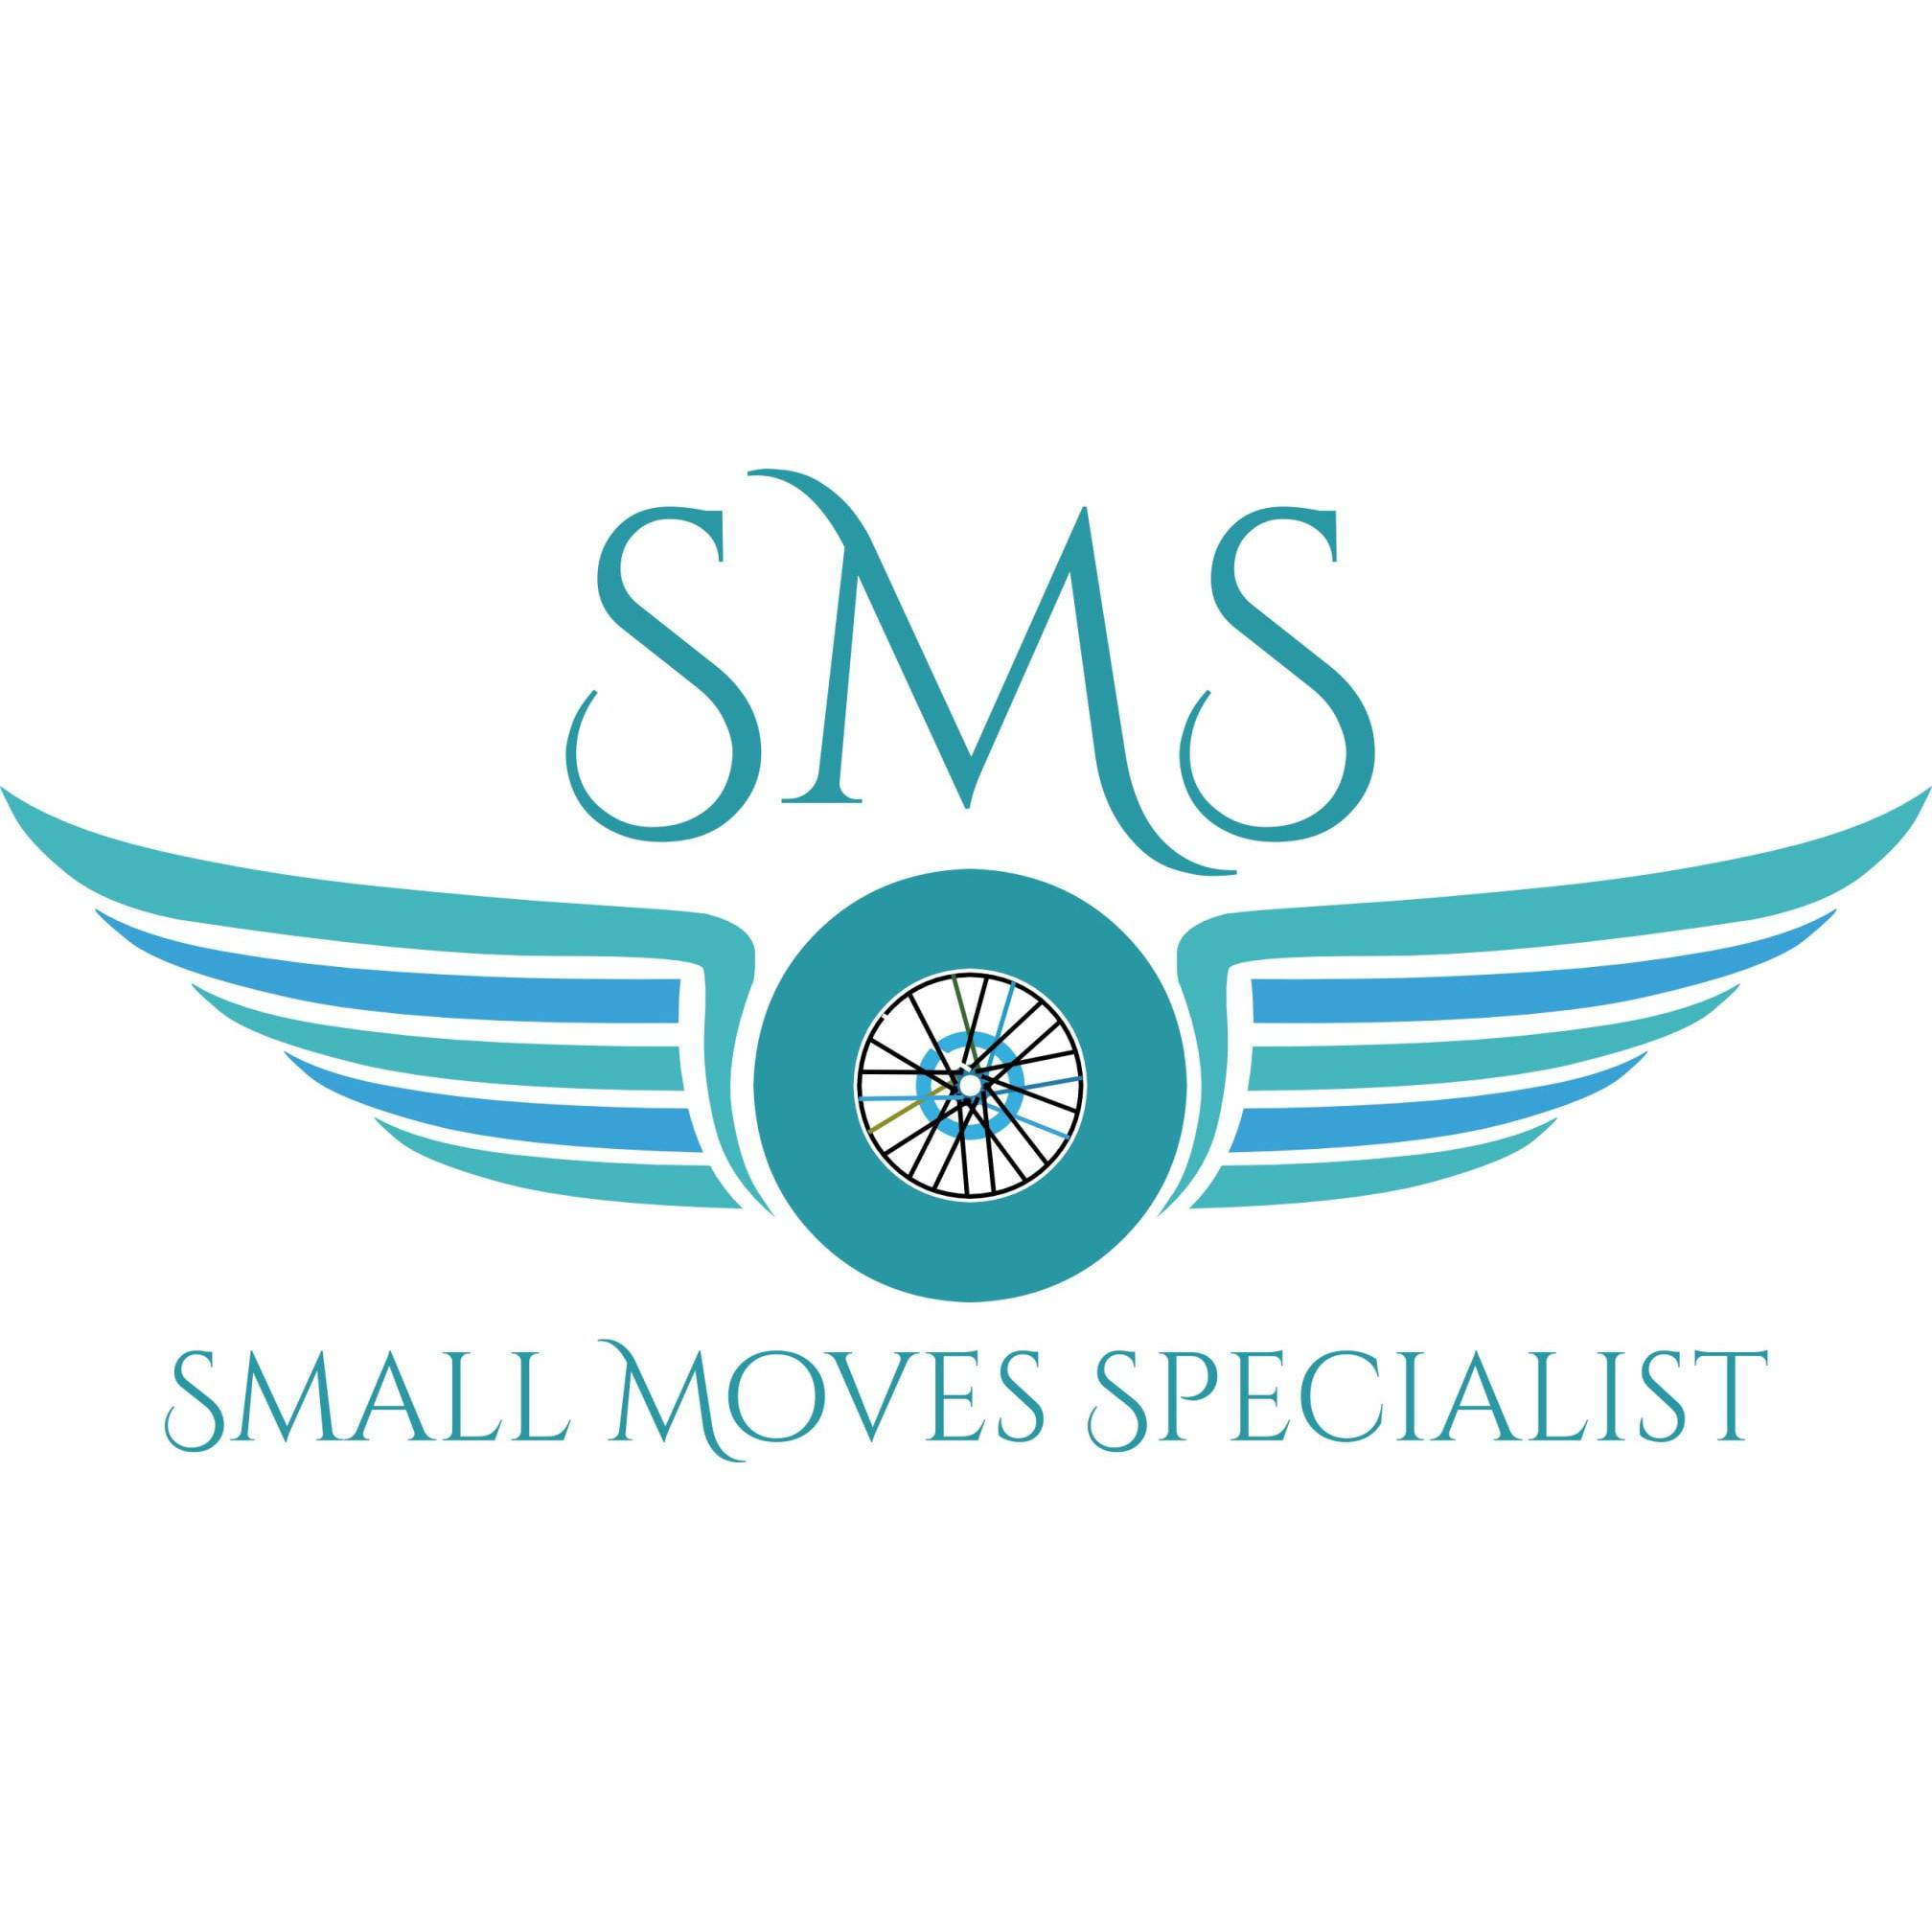 James Vane Courier Service Small Move Specialists - Shepton Mallet, Somerset BA4 5LJ - 07584 099282 | ShowMeLocal.com